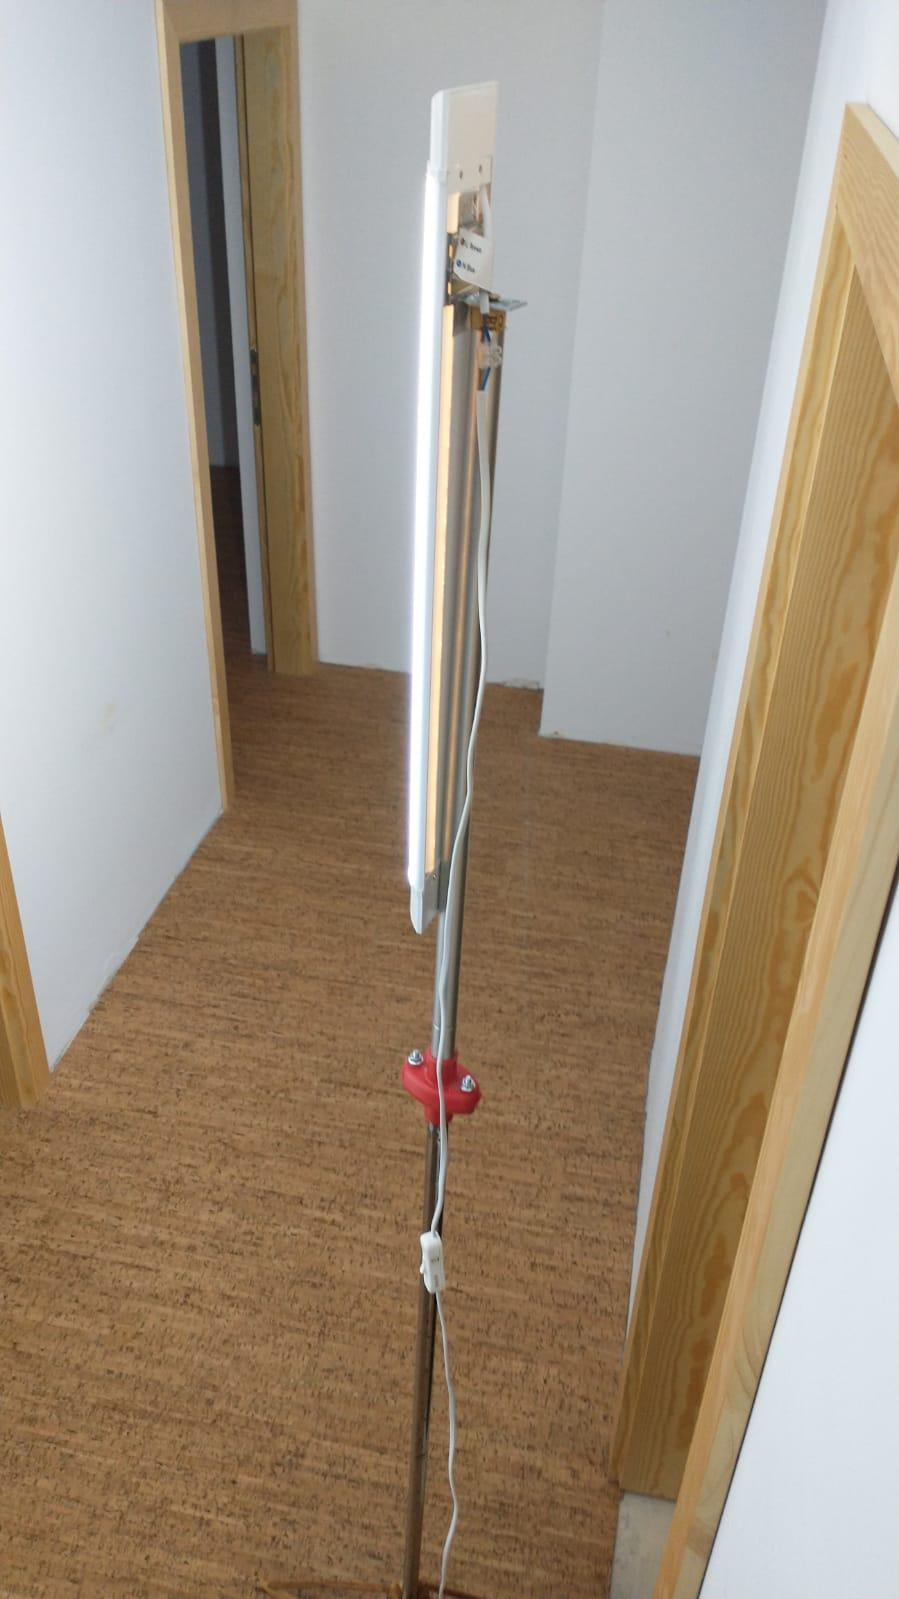 Daisy-Chain Mops (handle and Head) to Get Really Tall